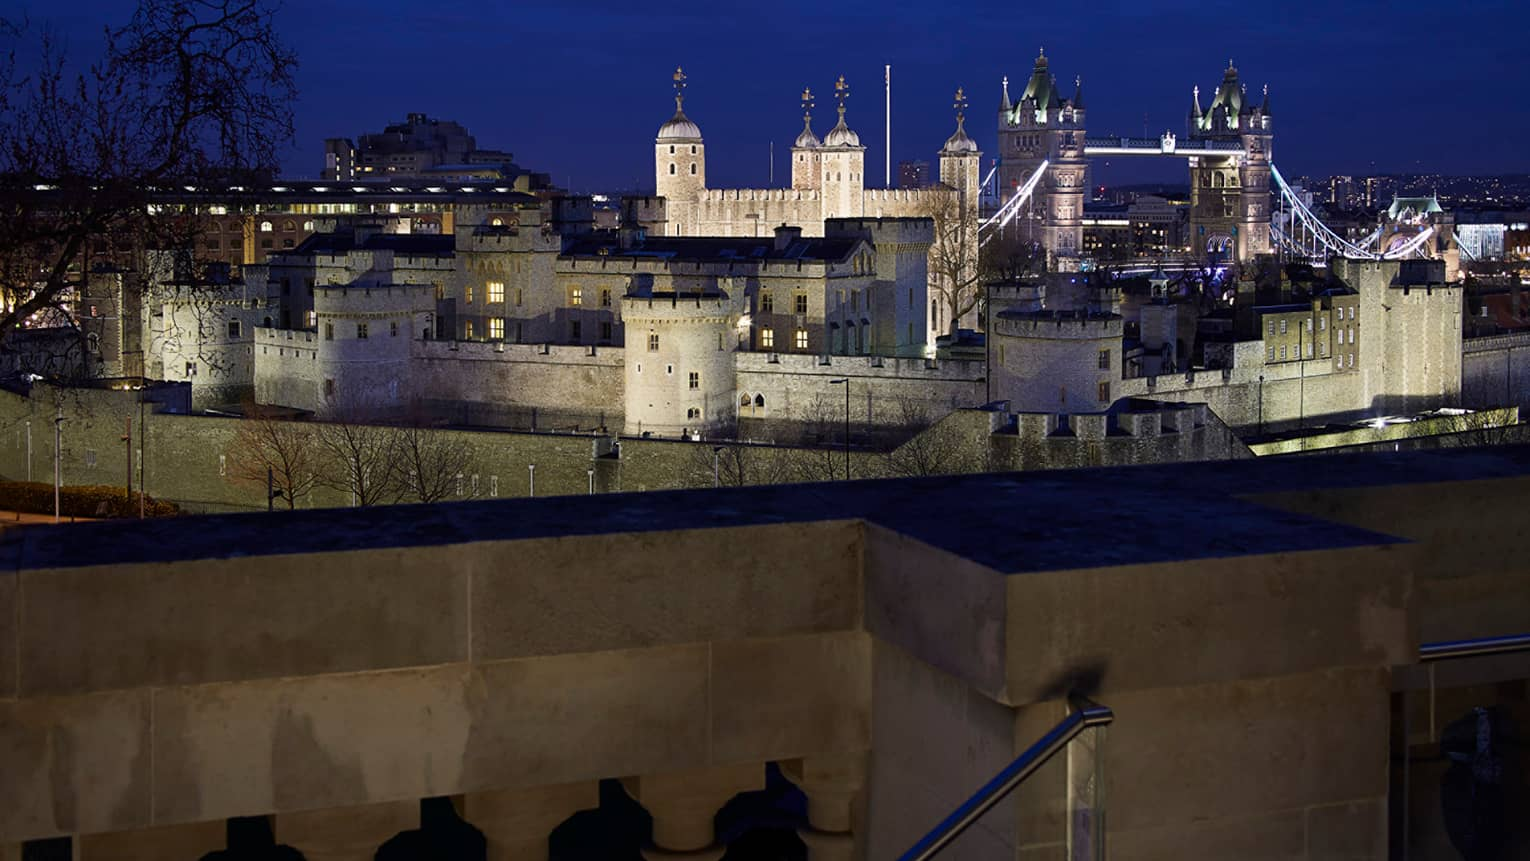 View over wall to Tower Bridge and the Tower of London at night